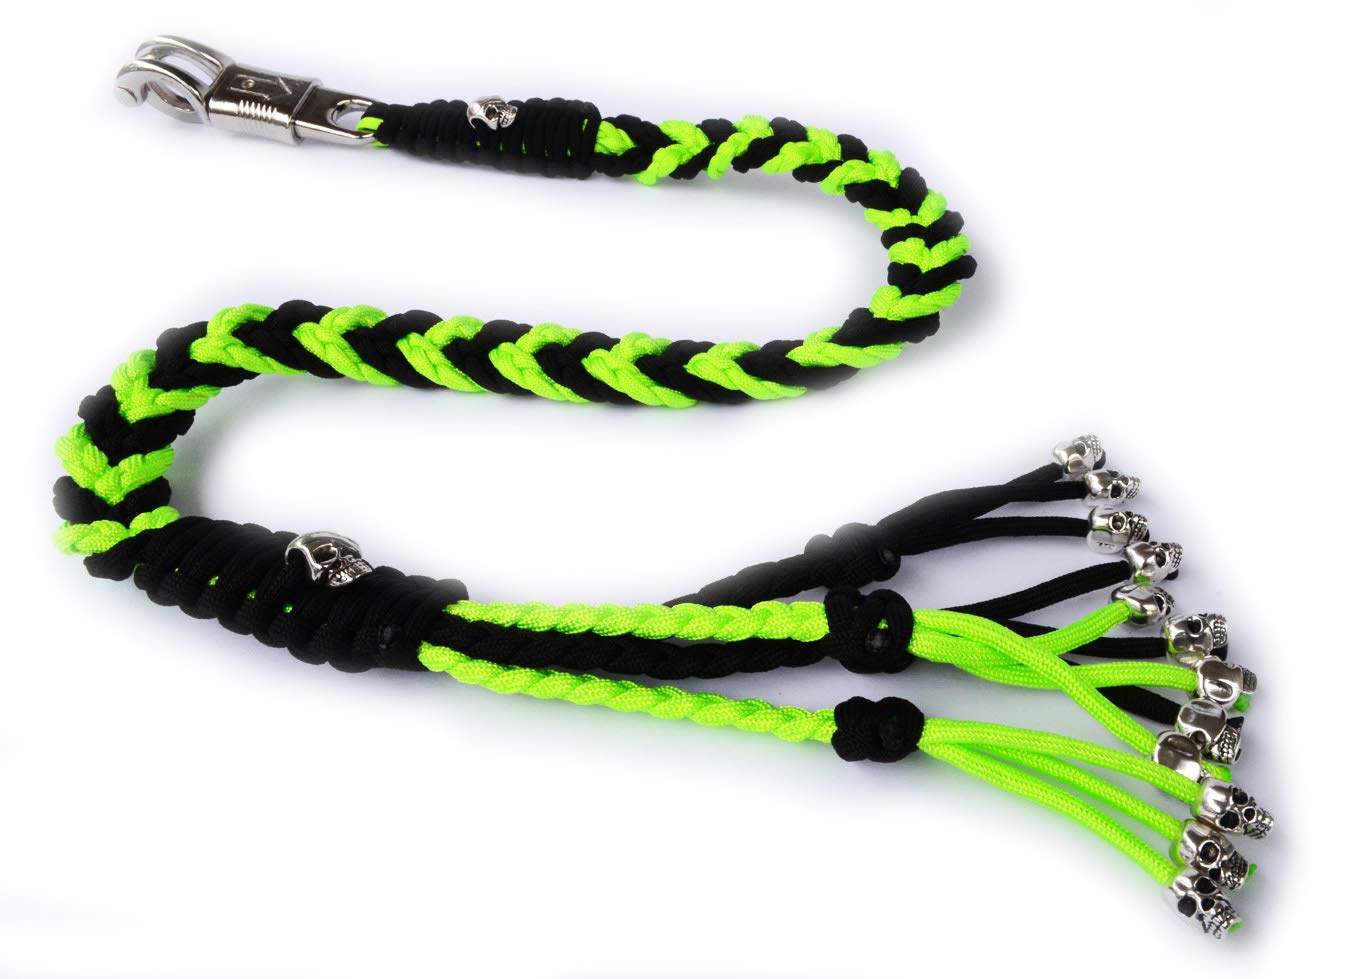 550 Paracord Motorcycle Whip Get Back Whip Metal Skulls 36'' - NEON/Black